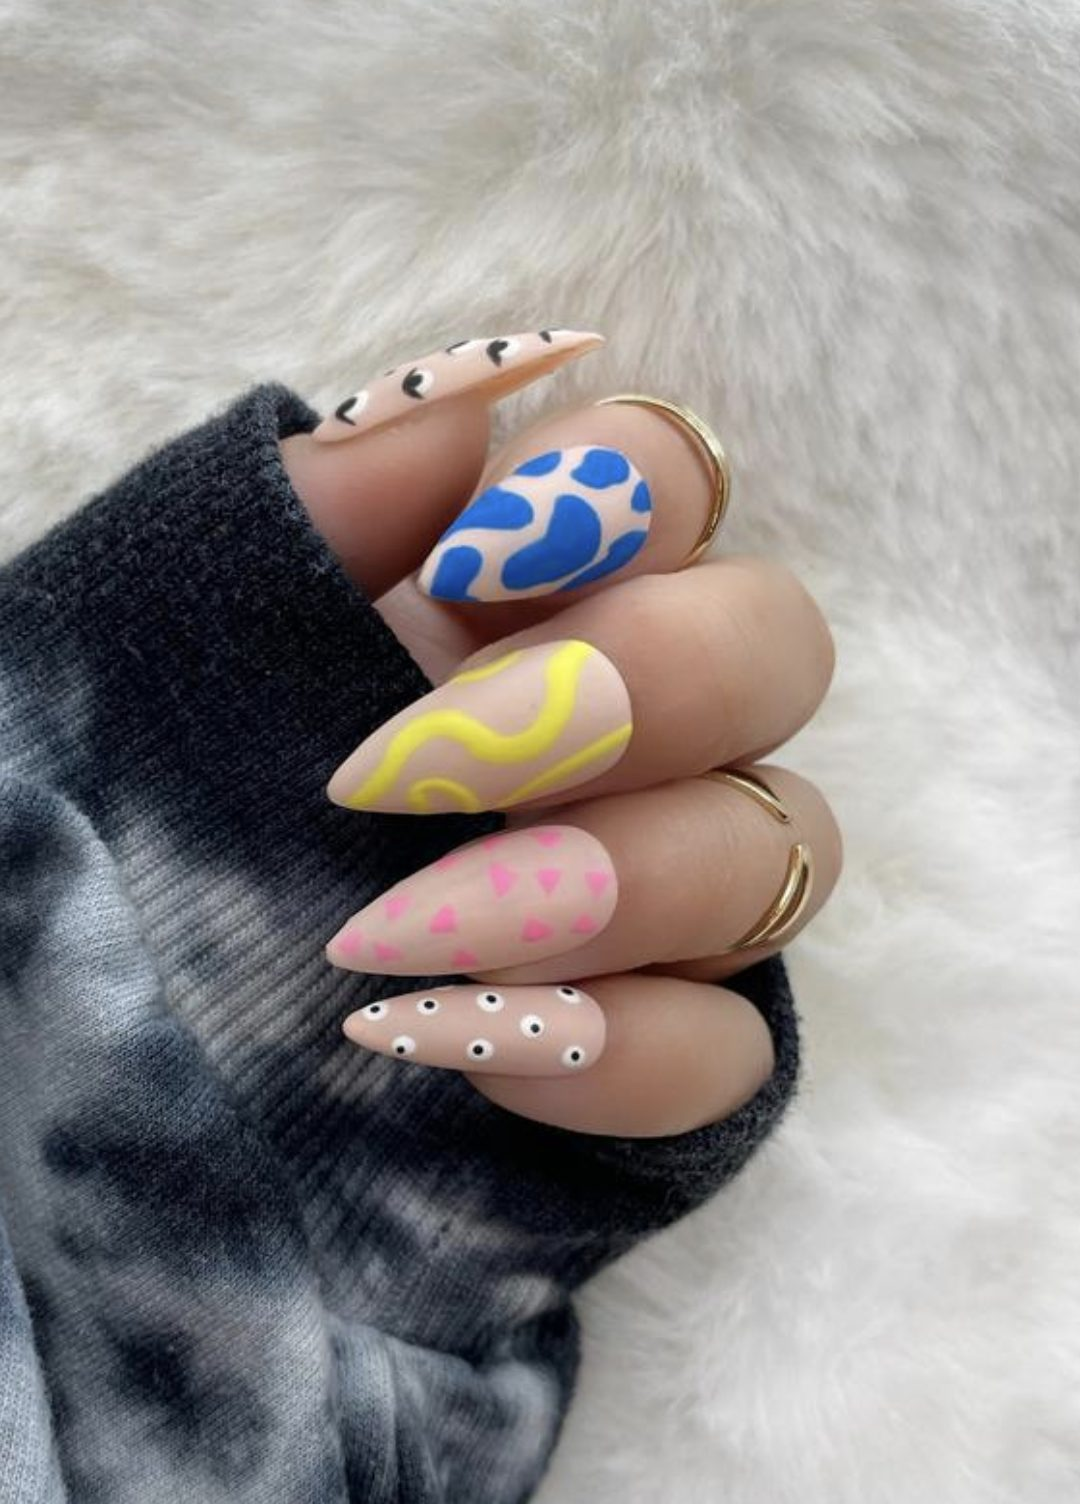 Cute and colorful abstract nails with swirls and patterns